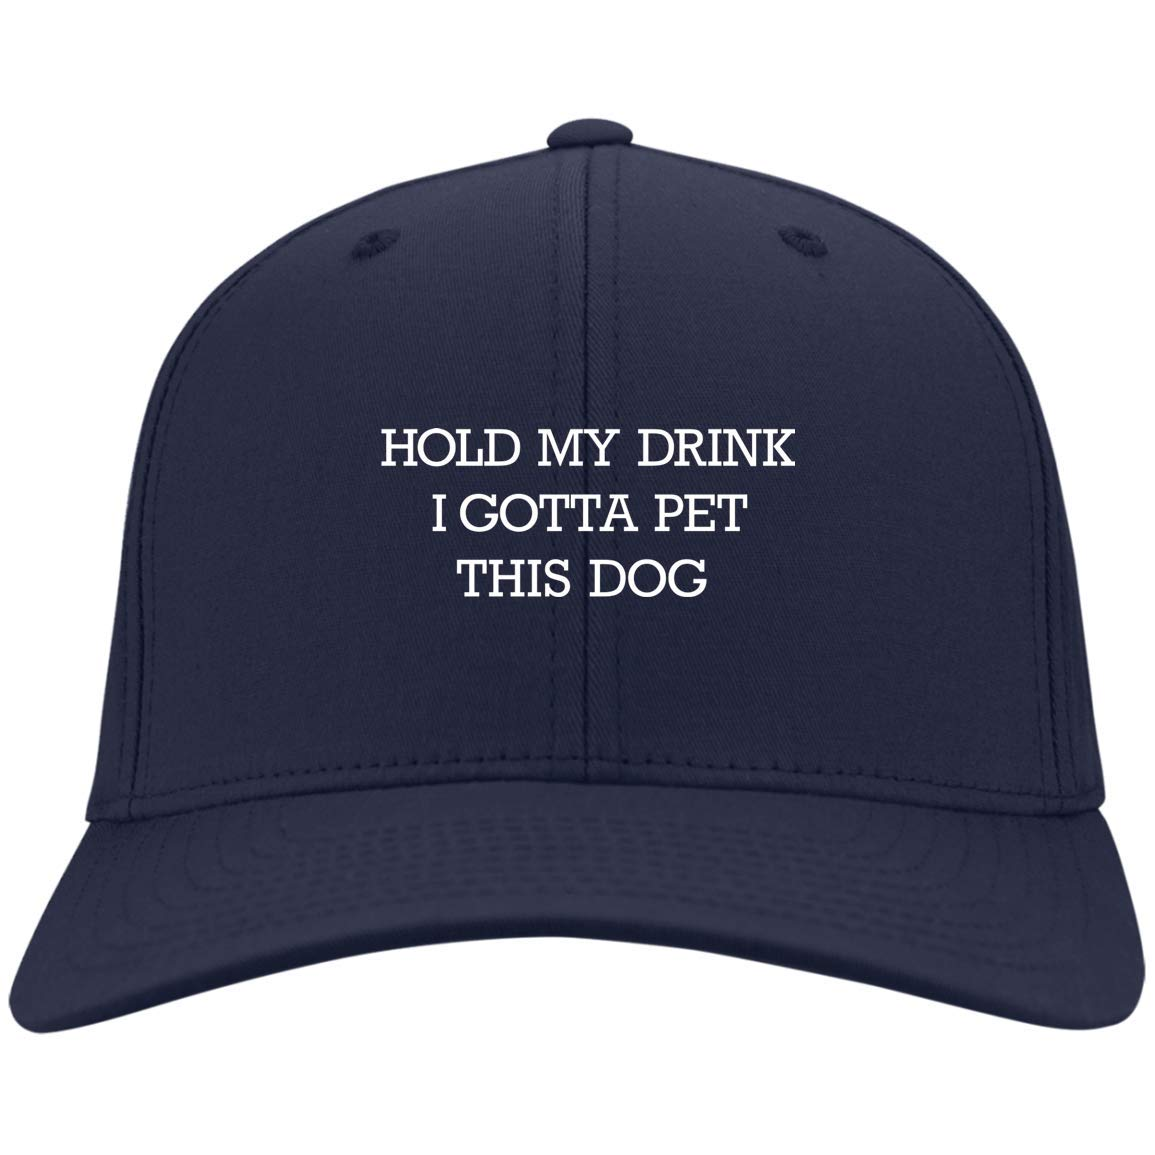 81d8f39a Amazon.com: Hold My Drink I Gotta Pet This Dog Funny Twill Cap - Trucker Hat  - Beanie - Knit Cap: Clothing